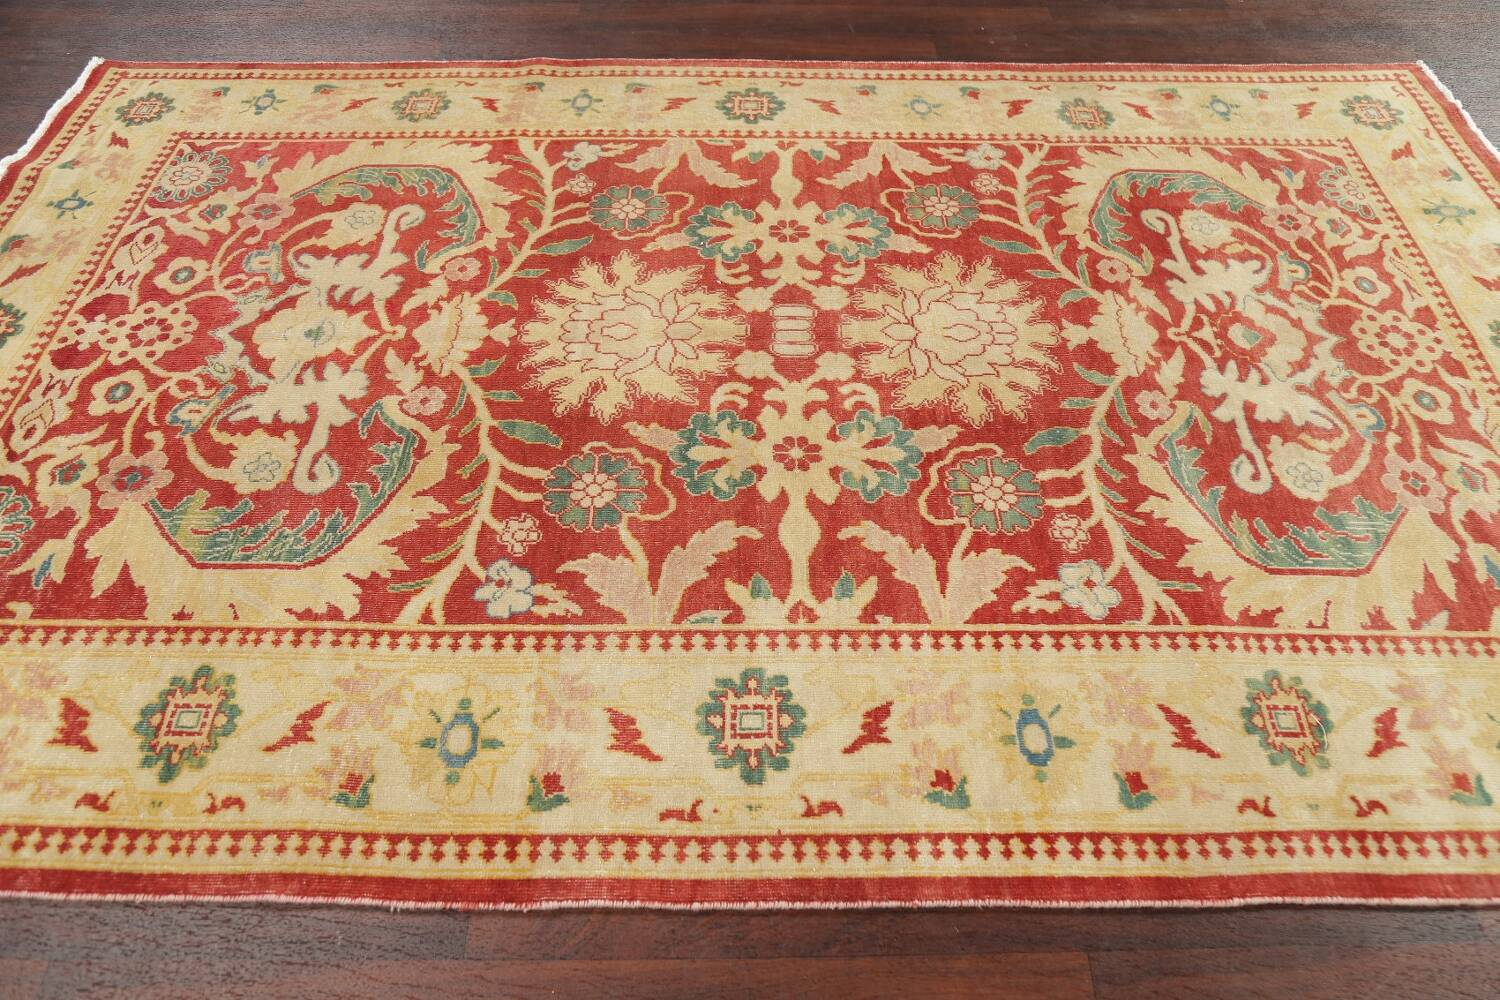 Floral Red Oushak Egyptian Area Rug 6x9 image 14